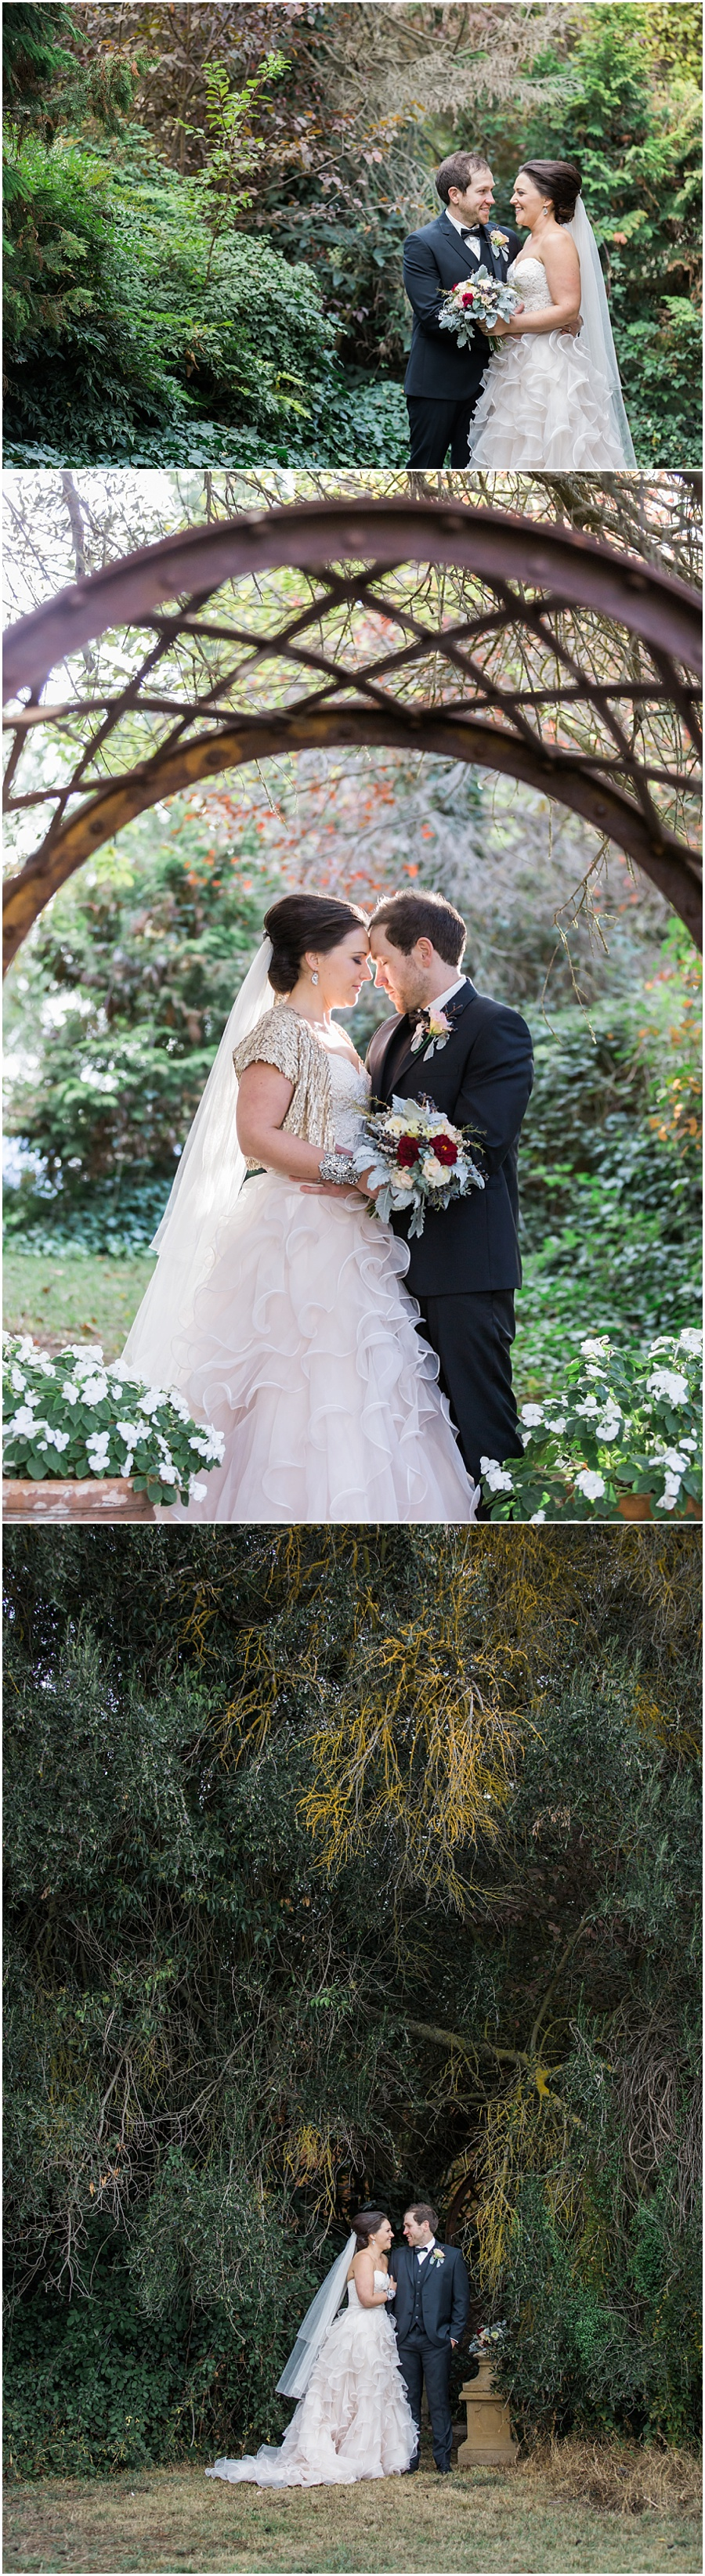 Castlemaine Wedding Photographer_0015